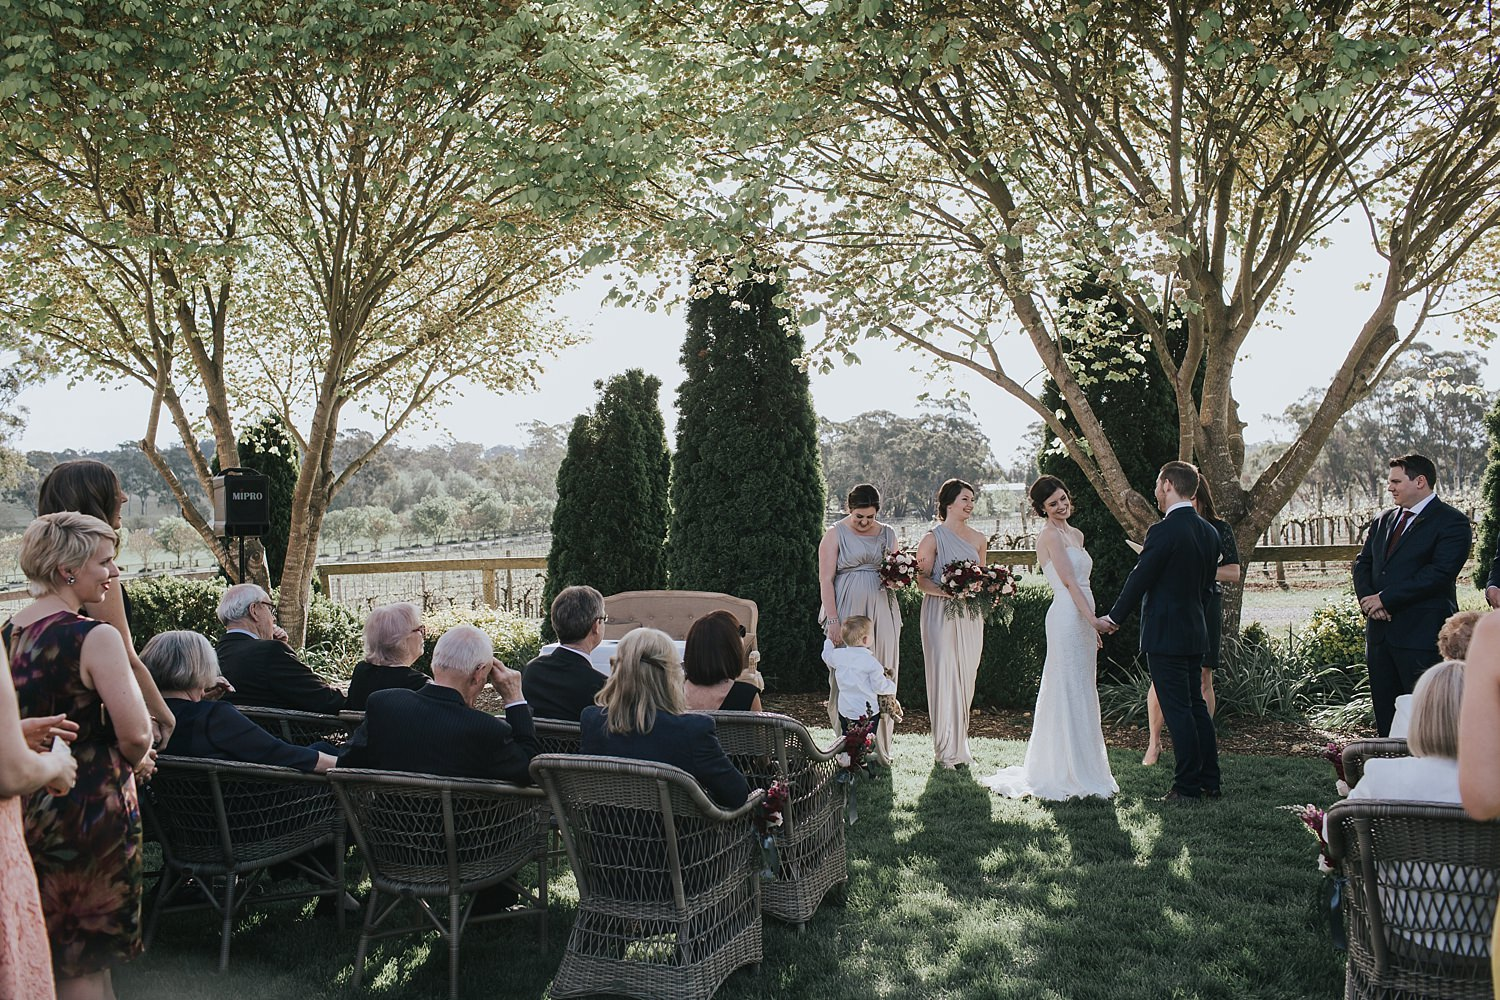 centennial vineyards wedding ceremony